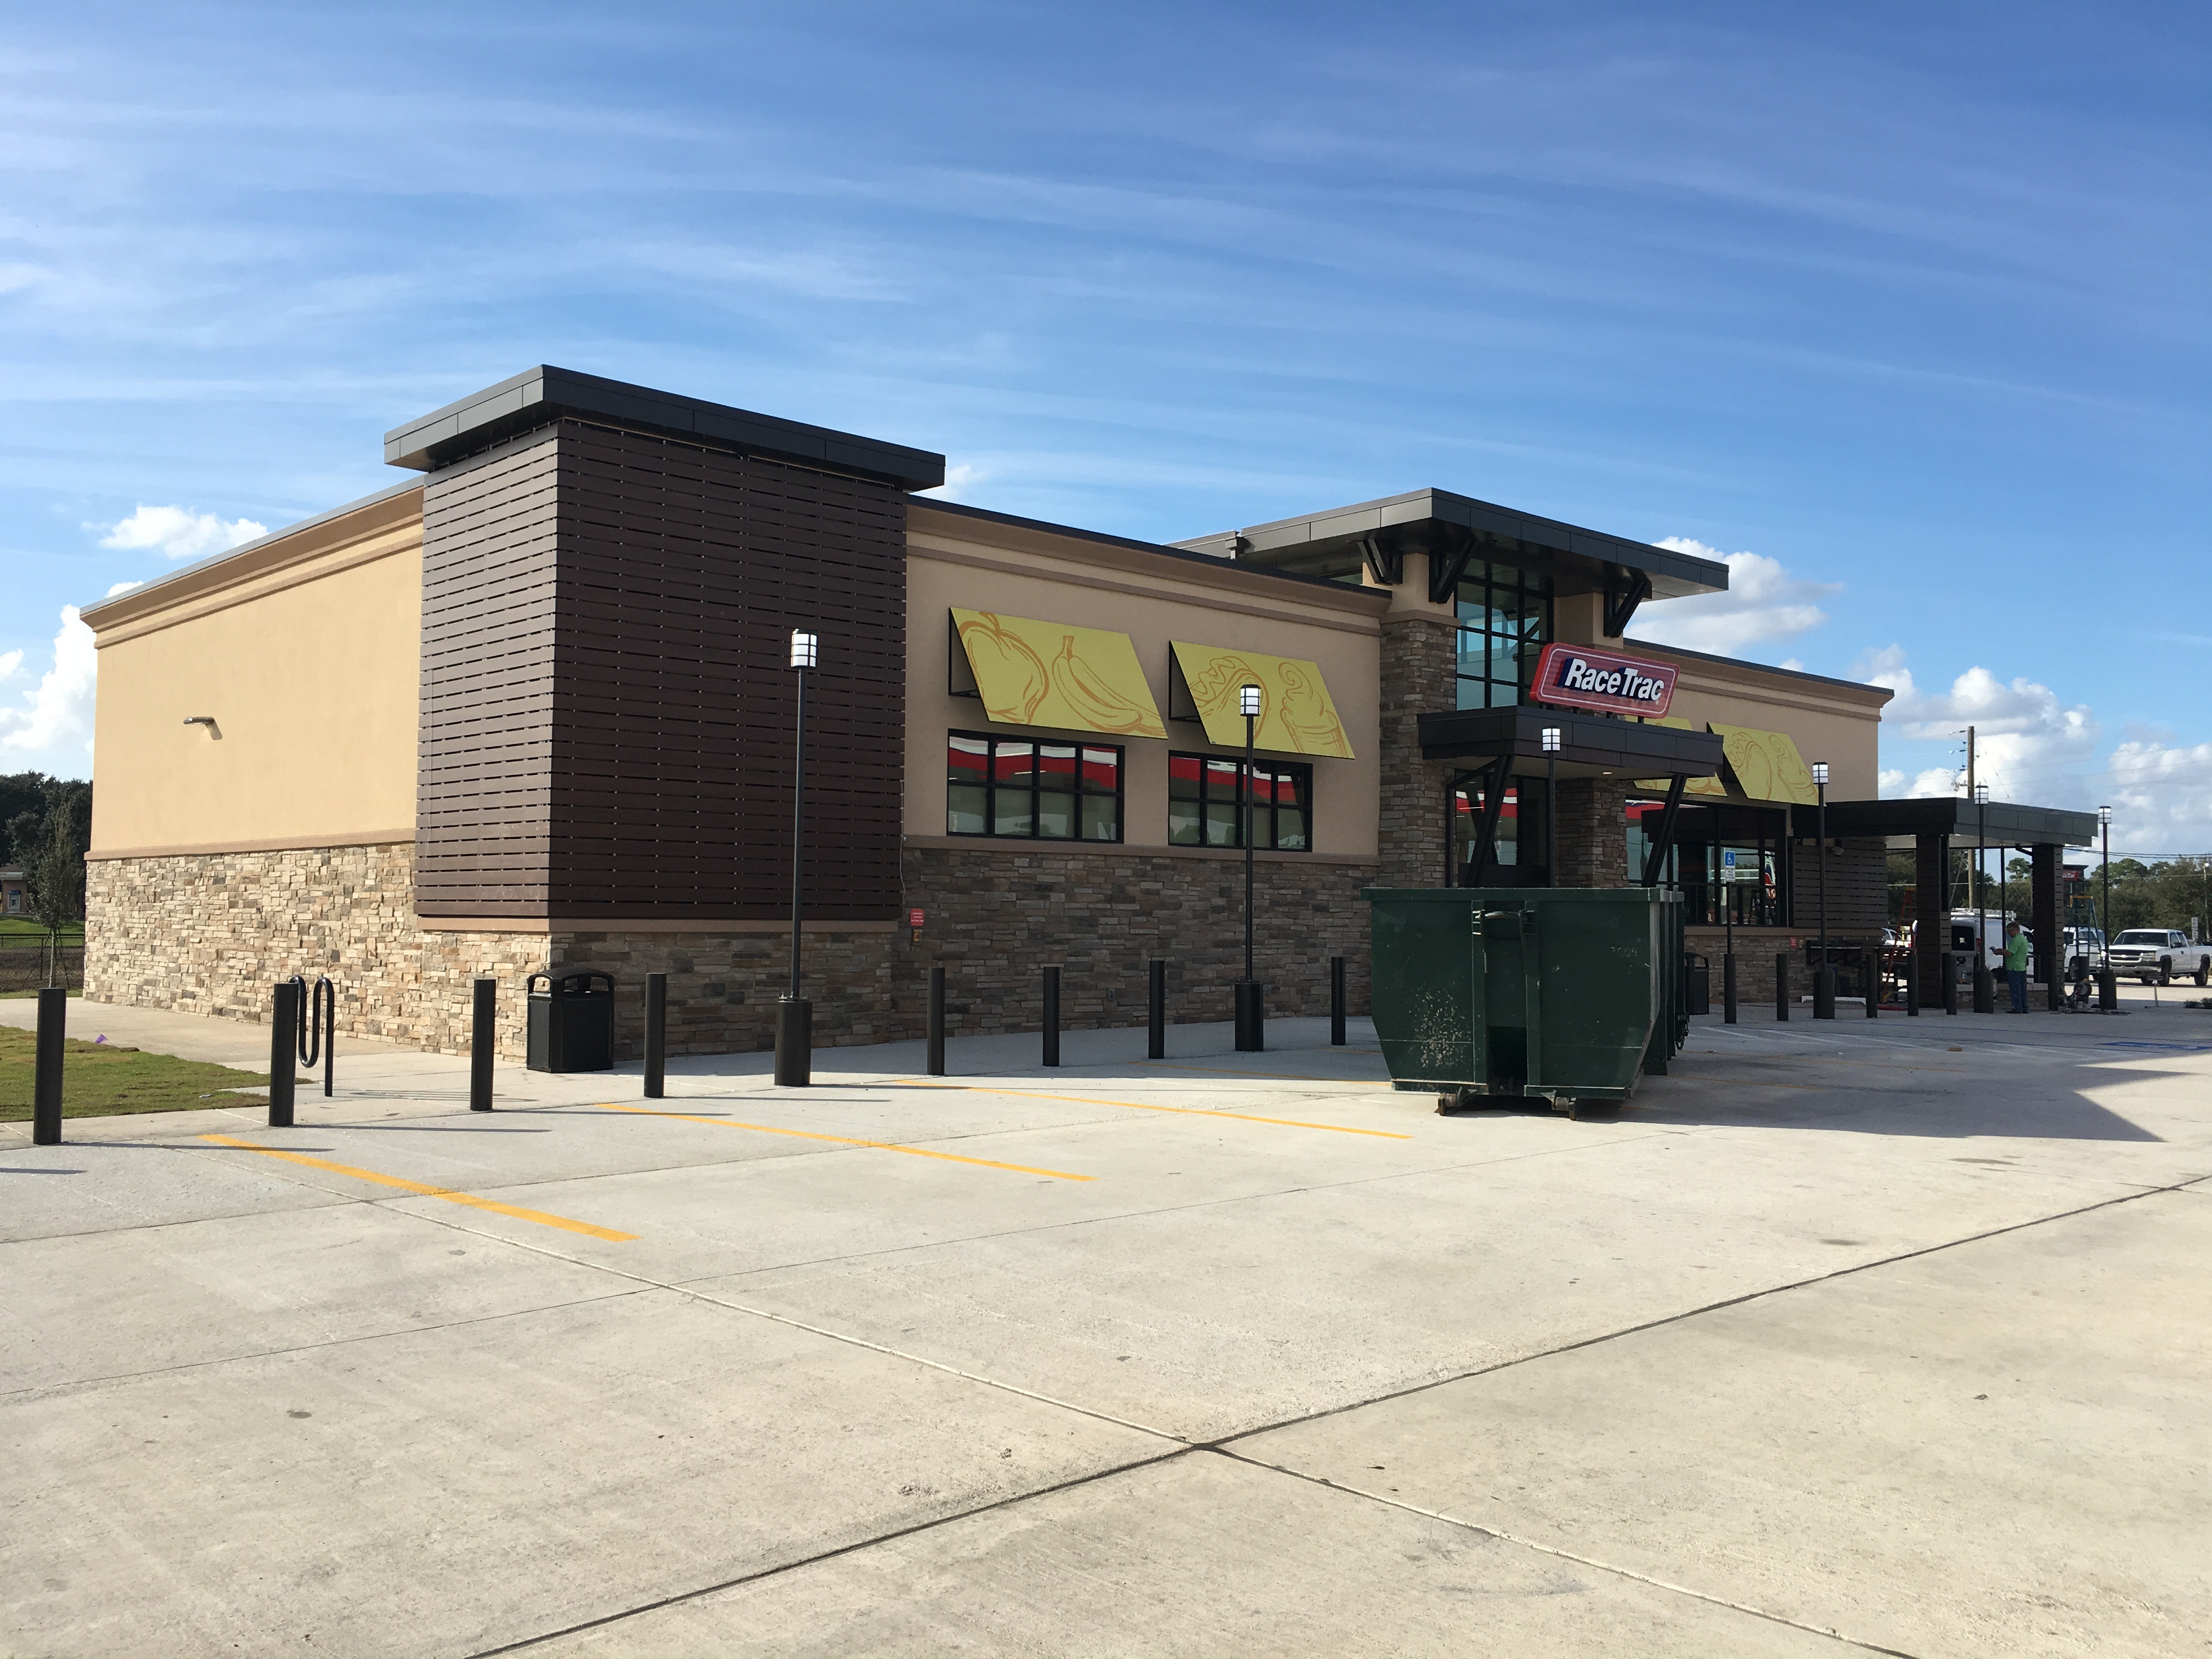 RaceTrac Gas Stations Projects by American Architecural Millwork